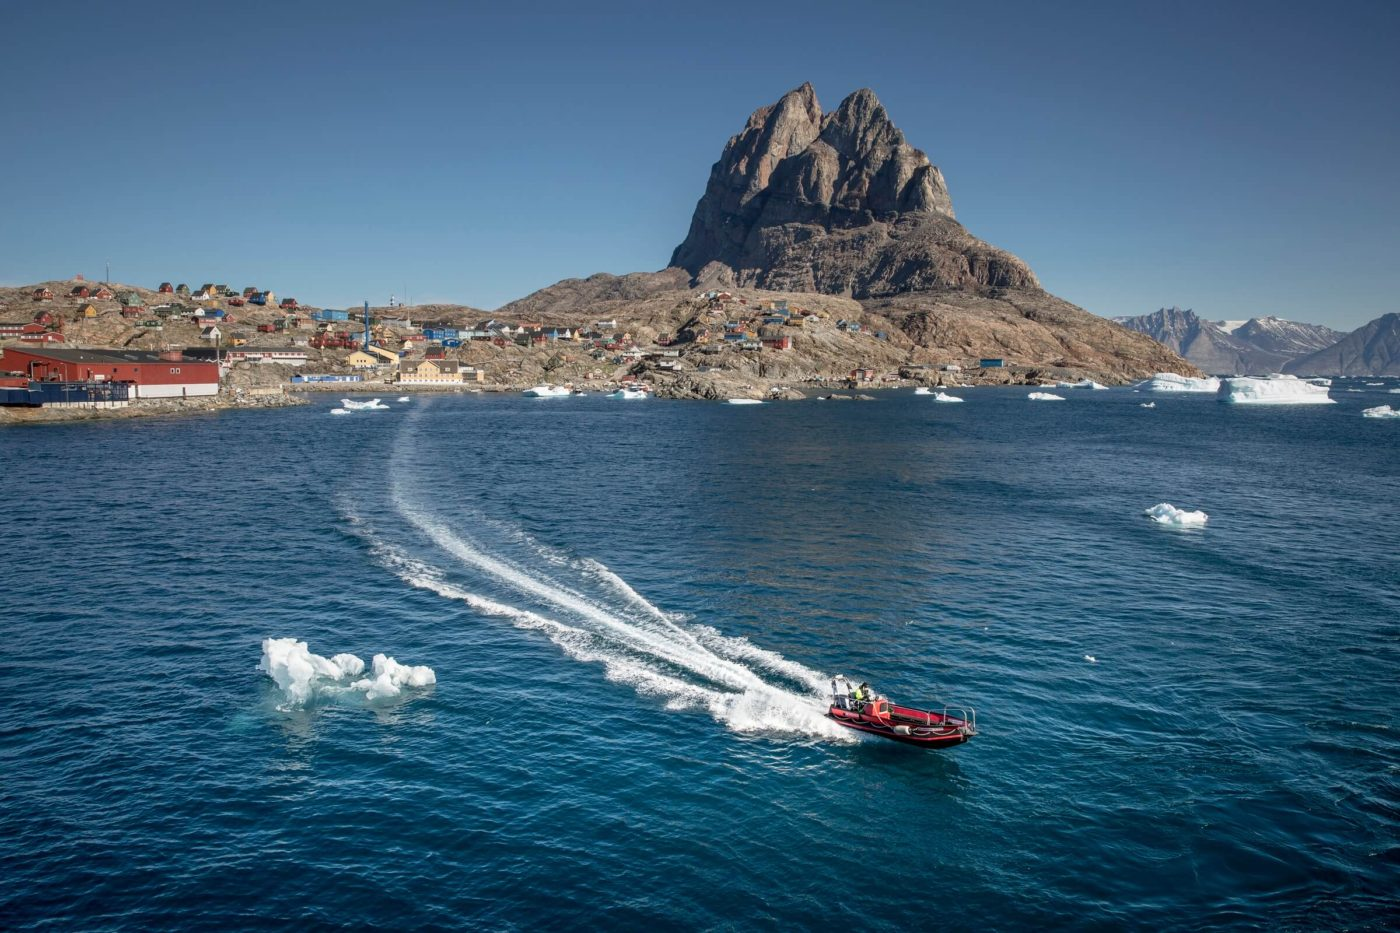 A tender boat between Uummannaq and MS Fram in Greenland. Photo by Mads Pihl, Visit Greenland